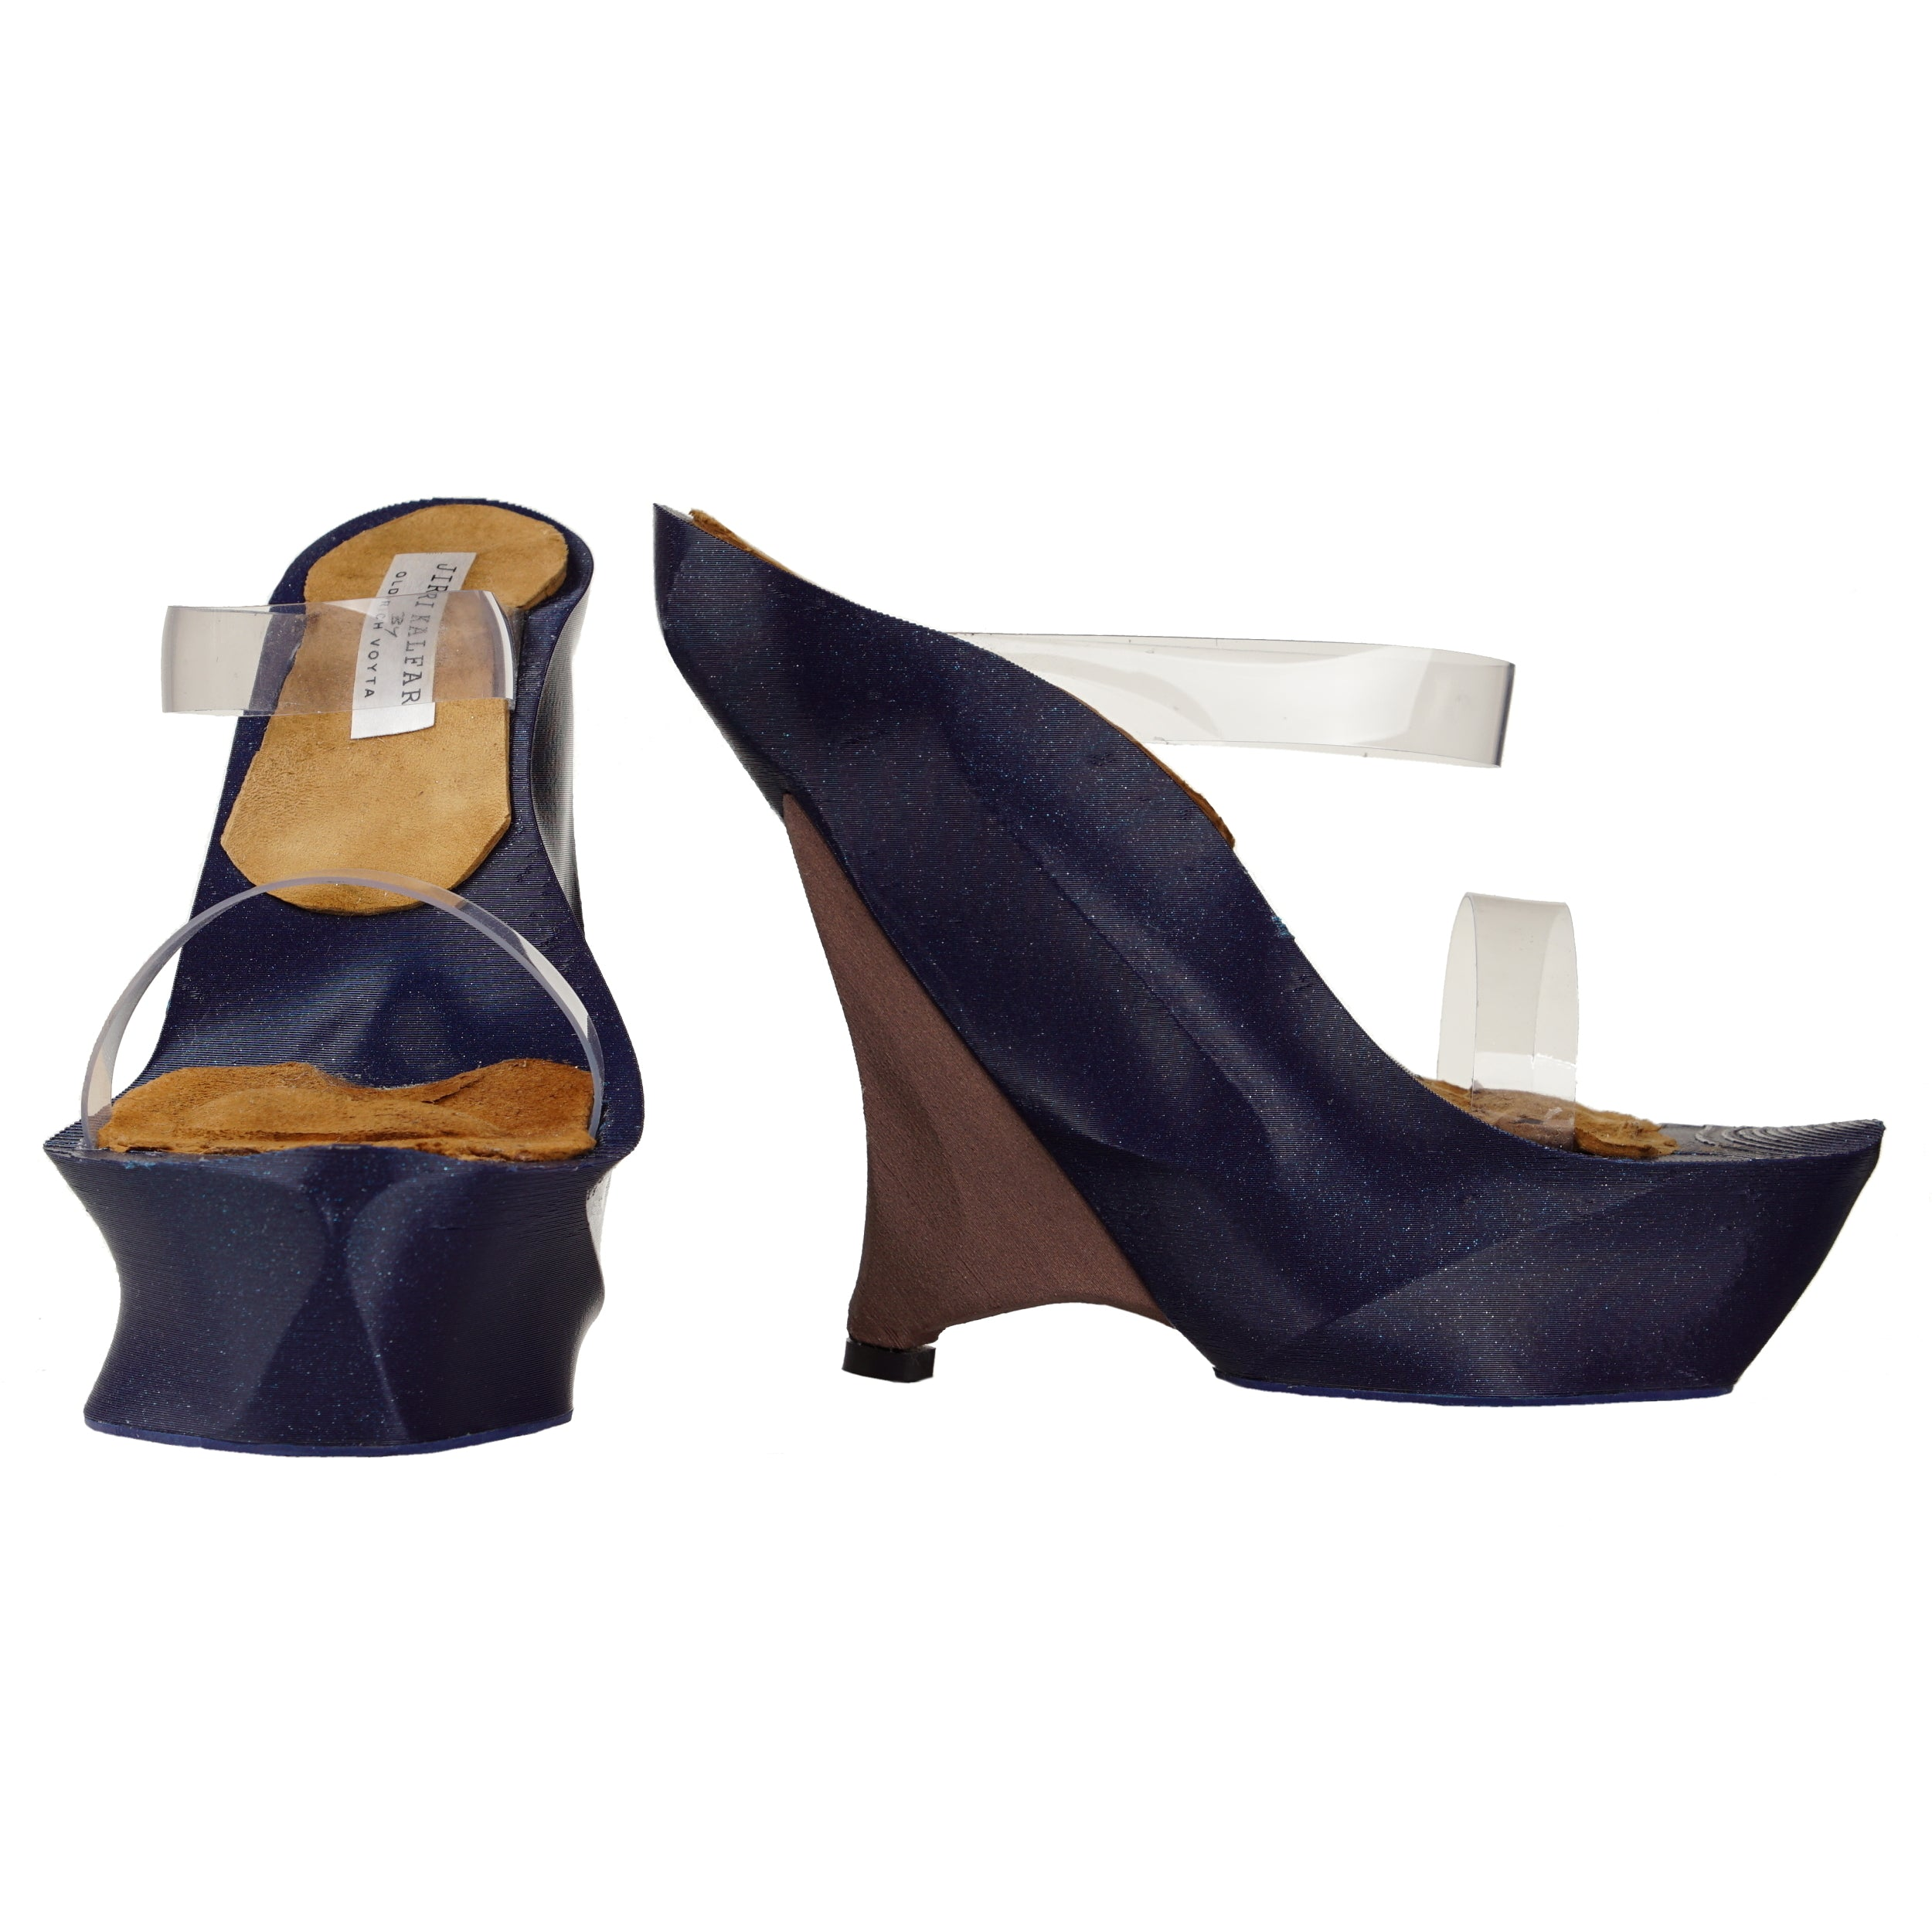 DARK BLUE & ROSE WOOD 3D PRINT SHOES WITH PVC STRAPS